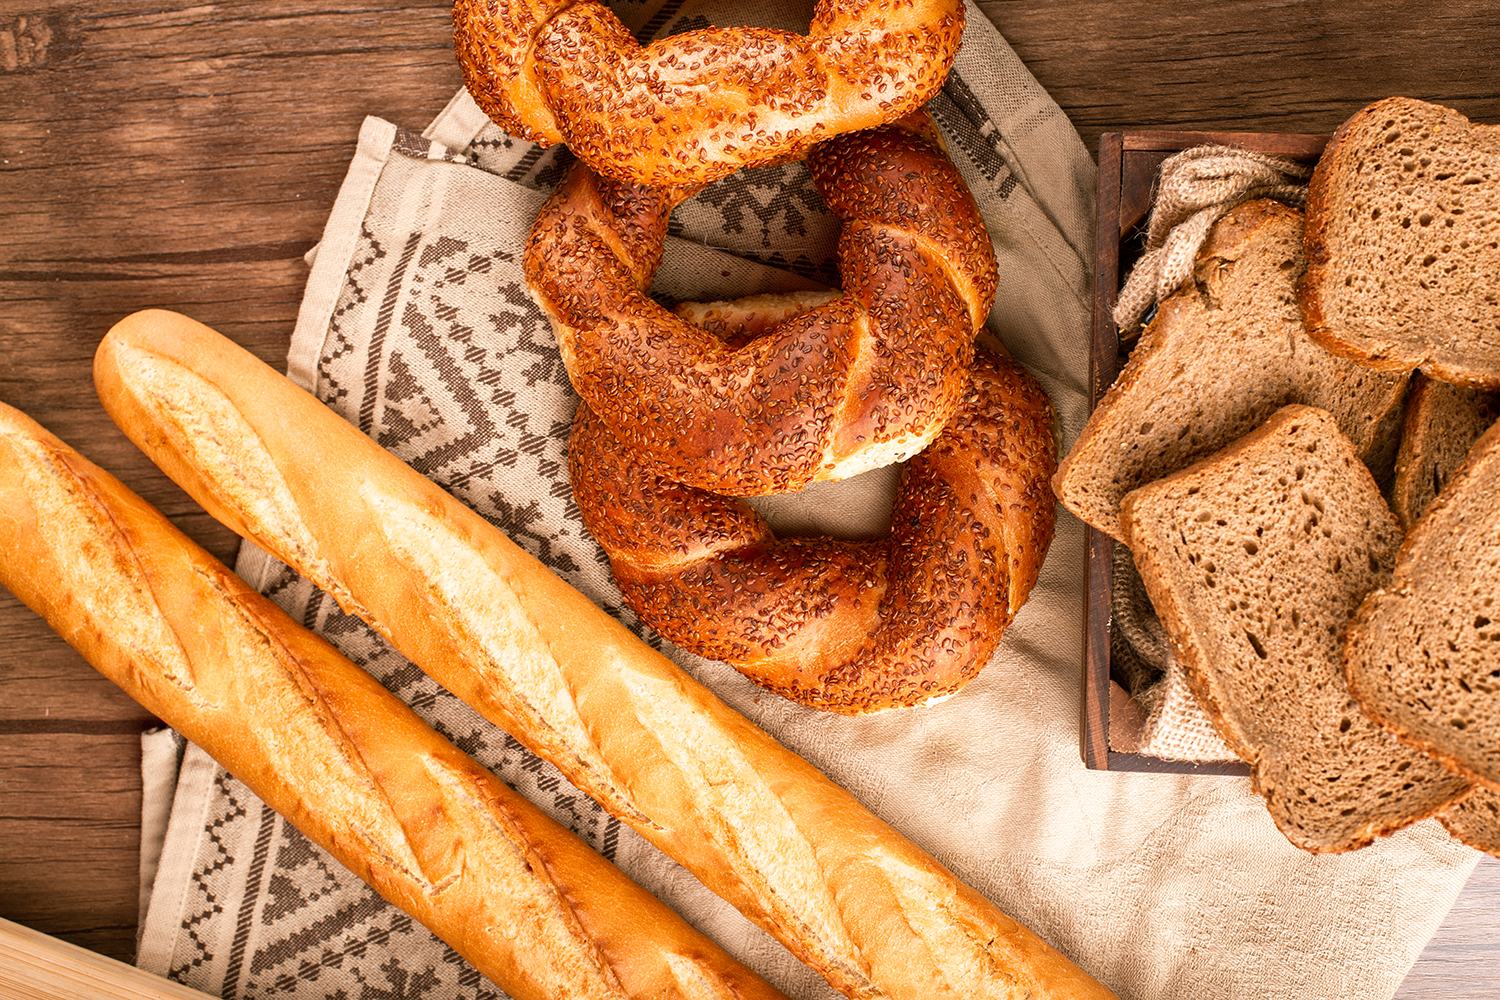 French baguette with turkish bagels and slices of bread in box